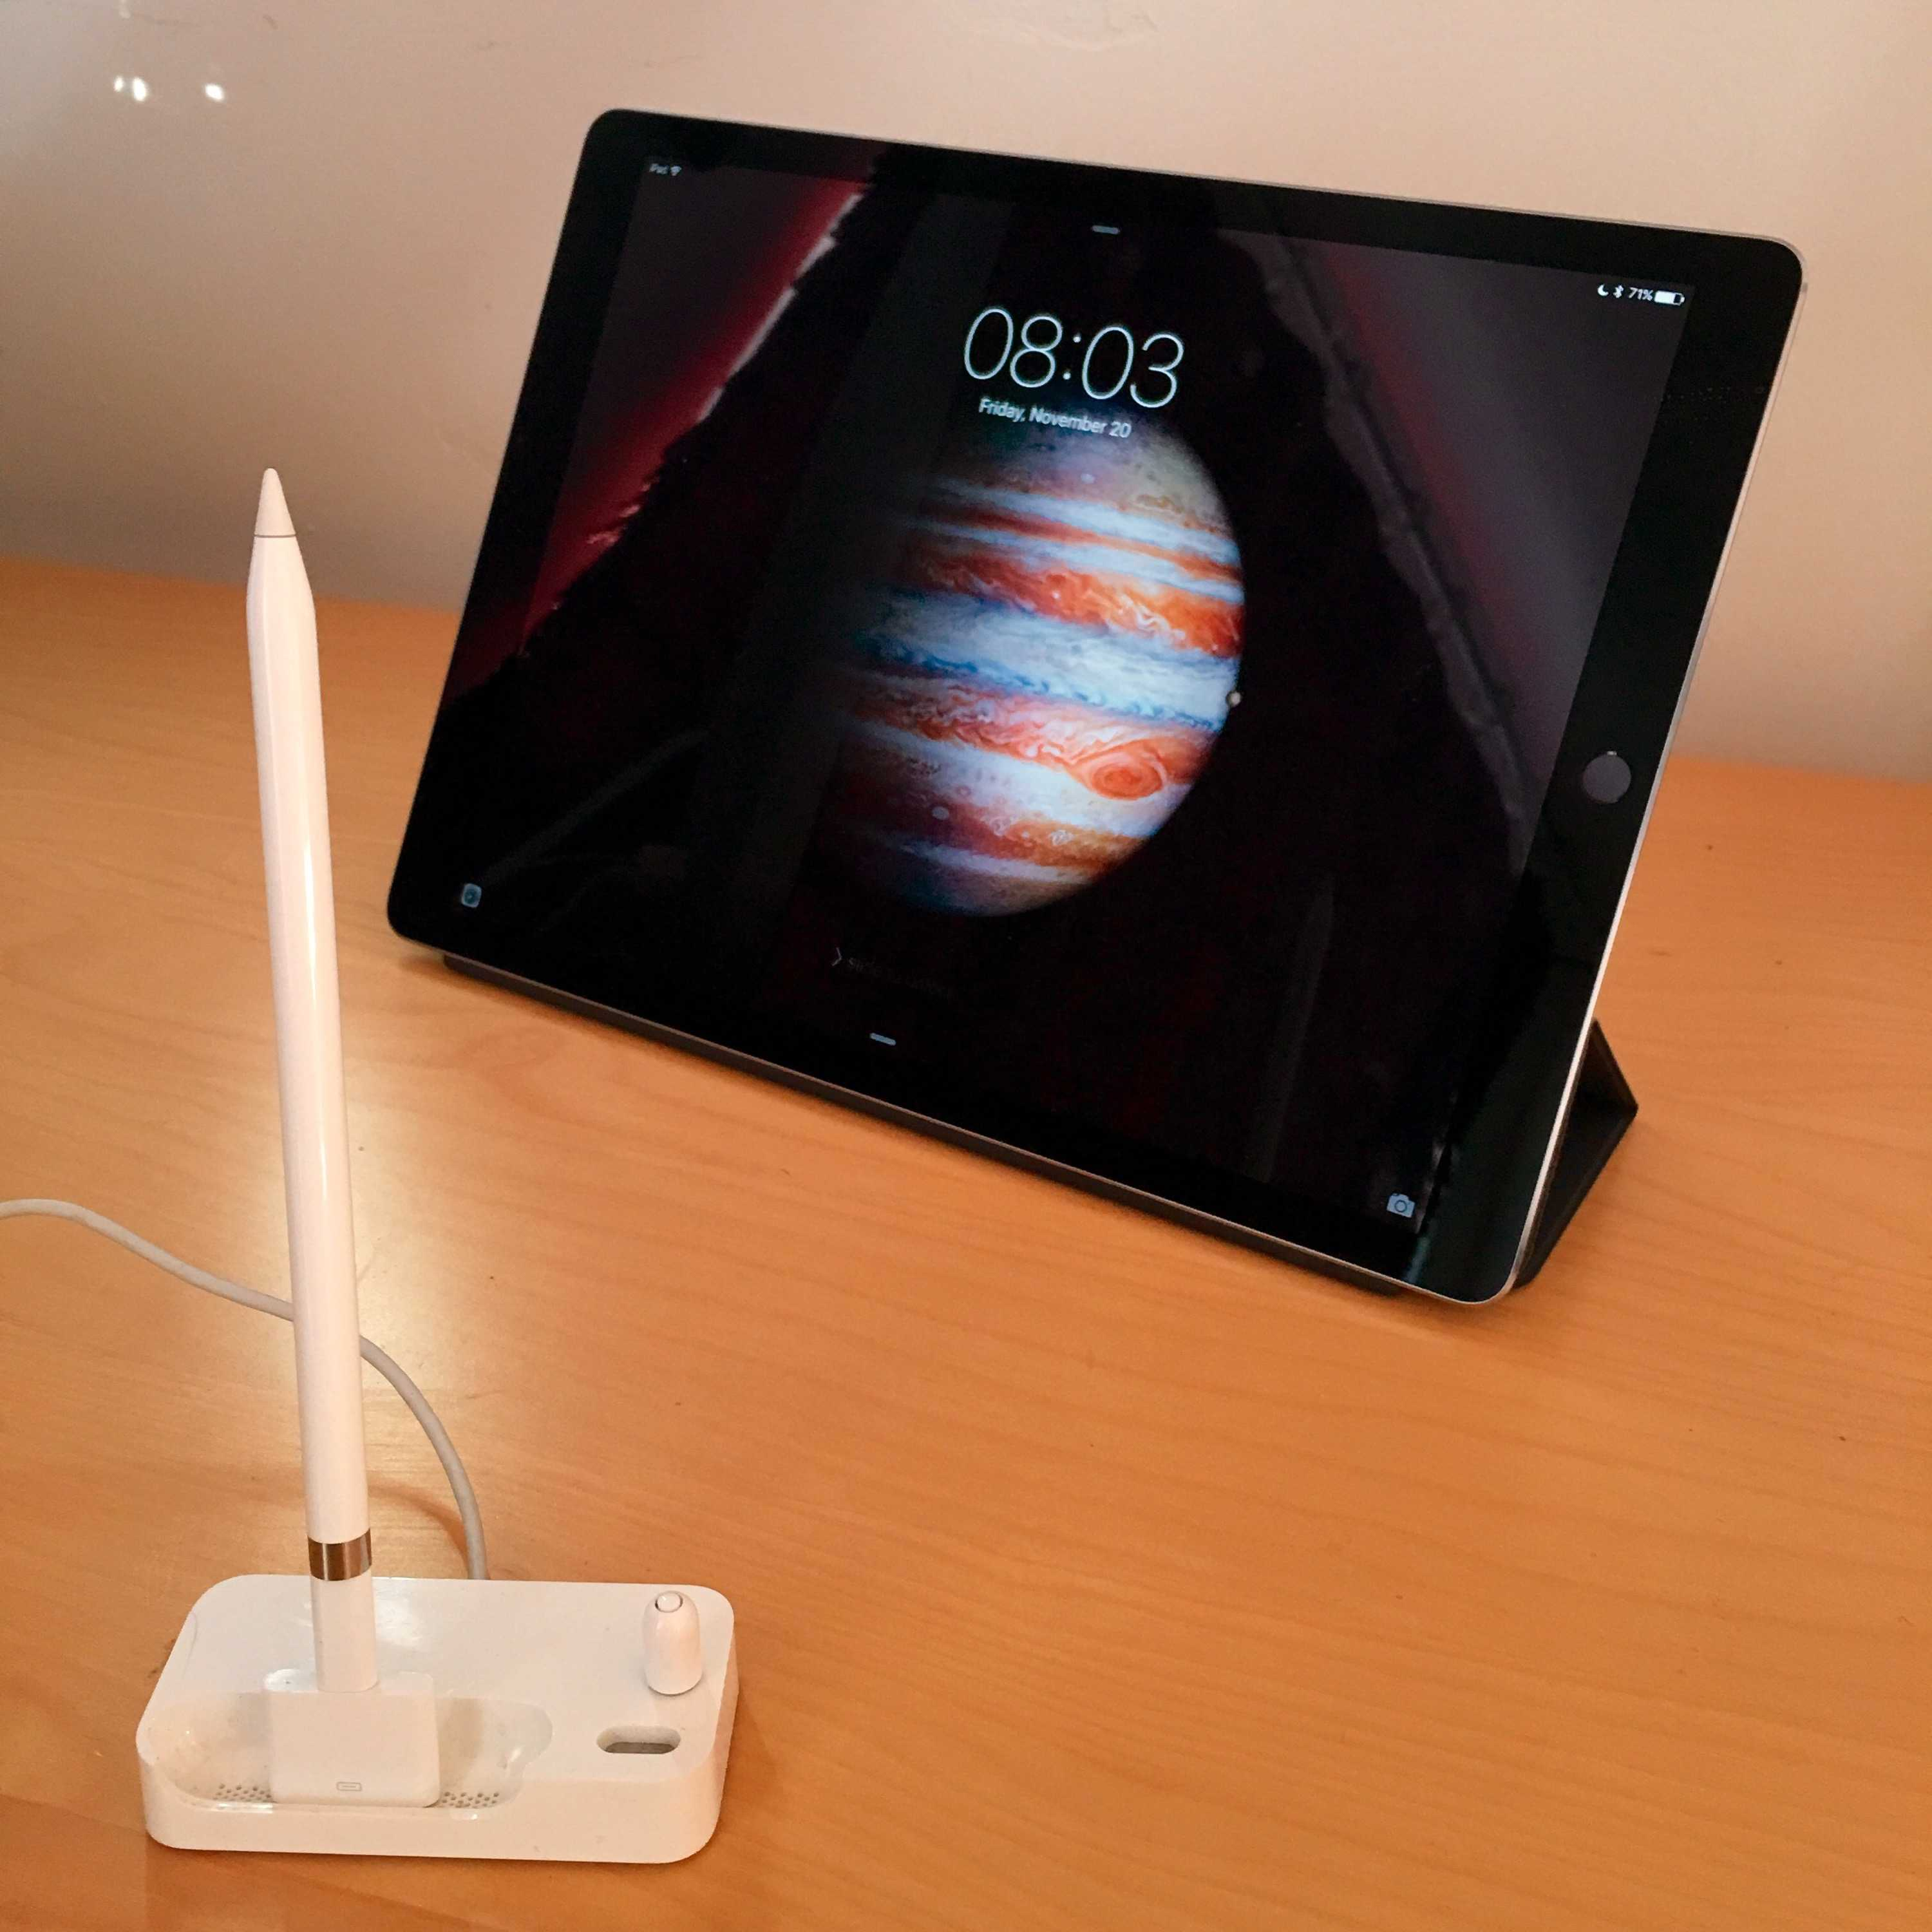 Using an old iPhone Bluetooth Headset dock as an Apple Pencil dock.